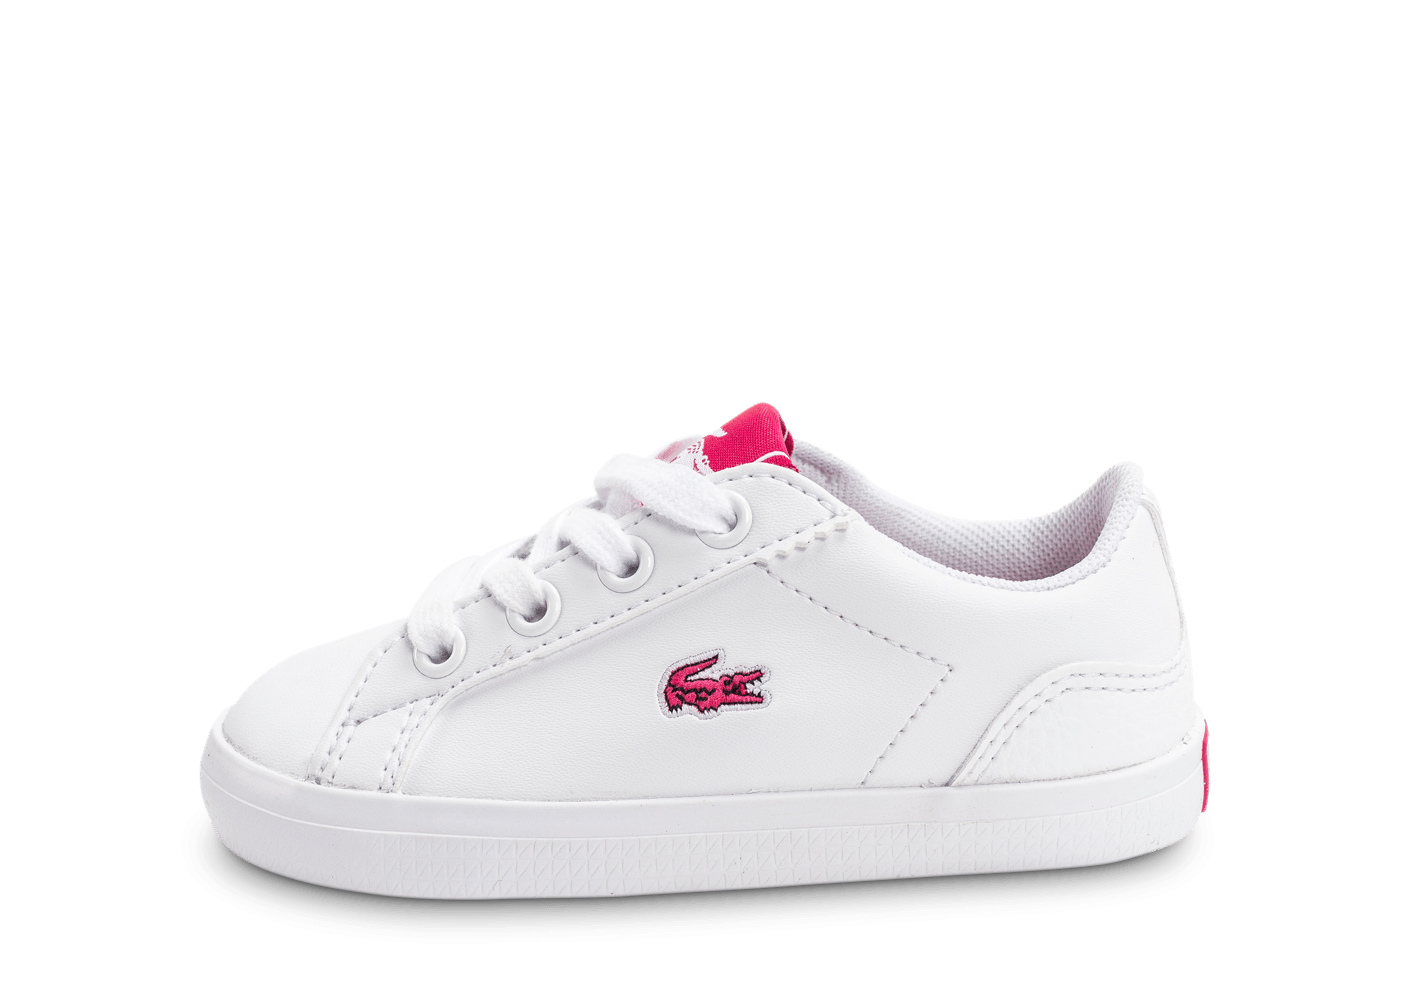 c32359e0a9694 Bebe Chaussure Fille Fille Lacoste Bebe Fille Bebe Chaussure Lacoste  Chaussure Lacoste Fille Chaussure Lacoste Chaussure ...